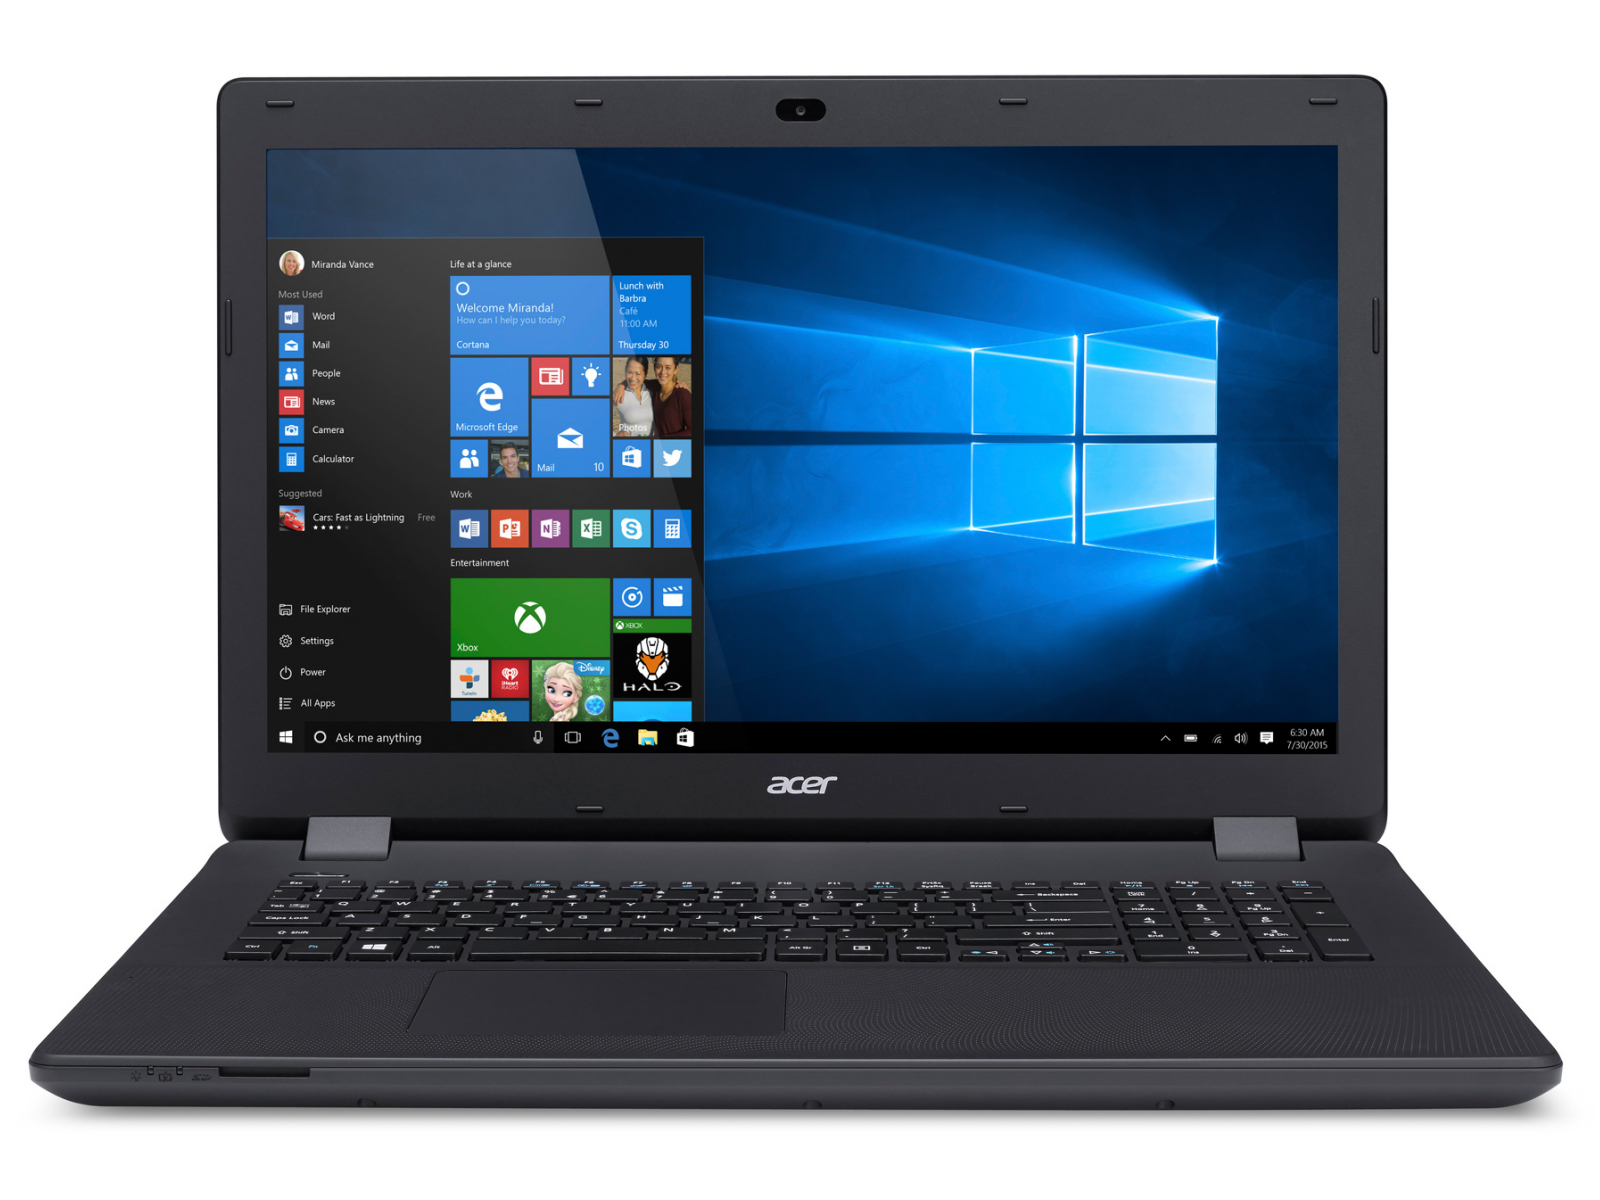 ACER ASPIRE 2310 AUDIO WINDOWS 8 DRIVERS DOWNLOAD (2019)